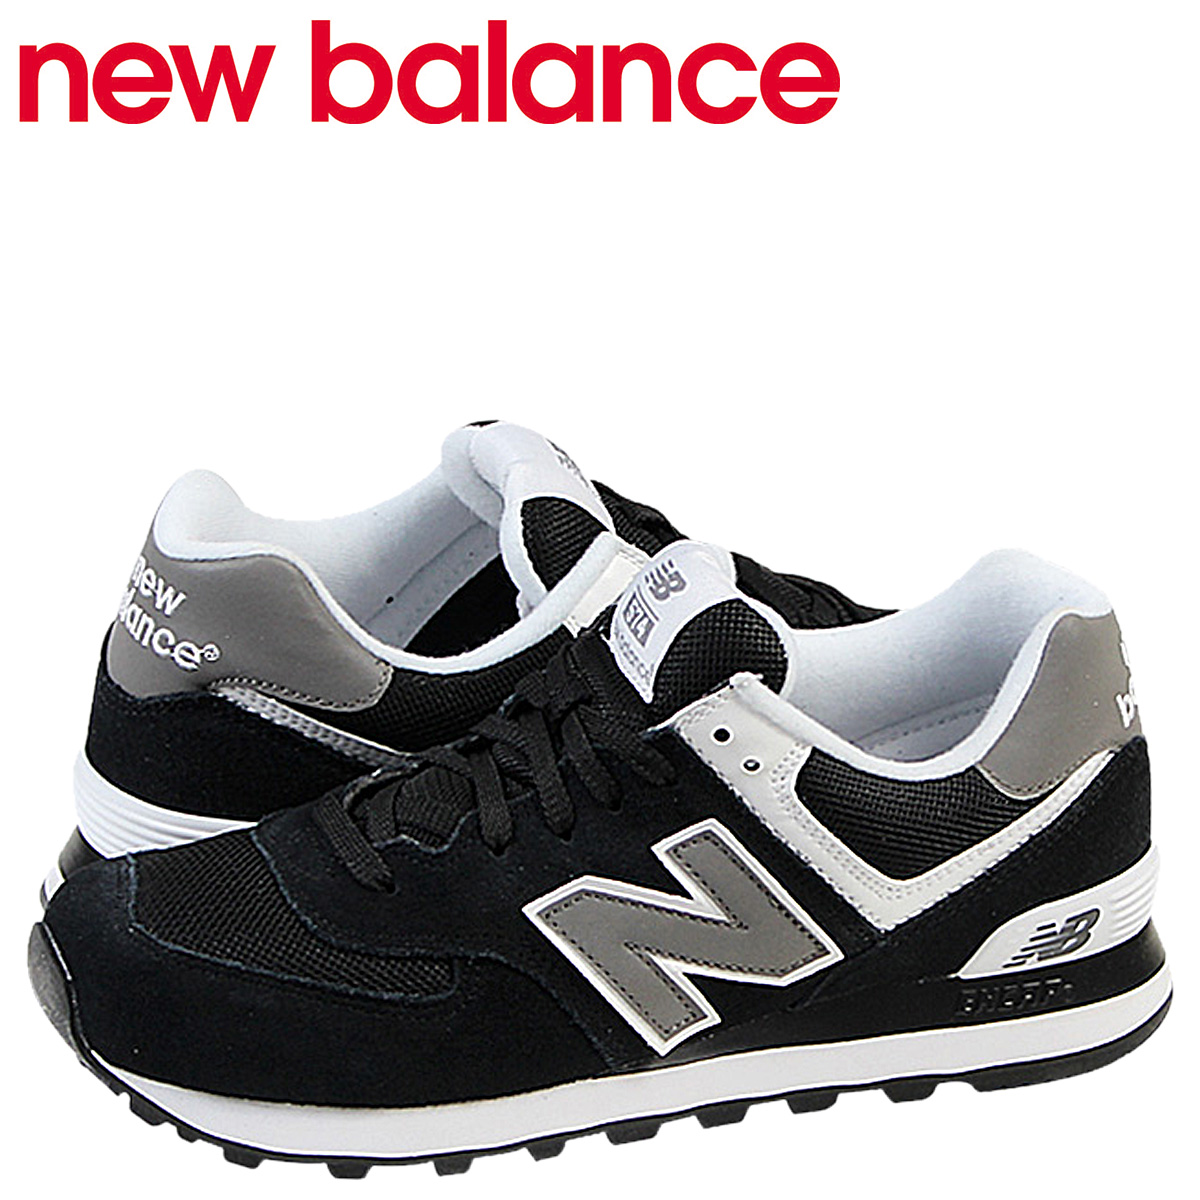 6f01188987ea8 ... buy sugar online shop new balance new balance m574skw sneakers d wise  suede x mesh men